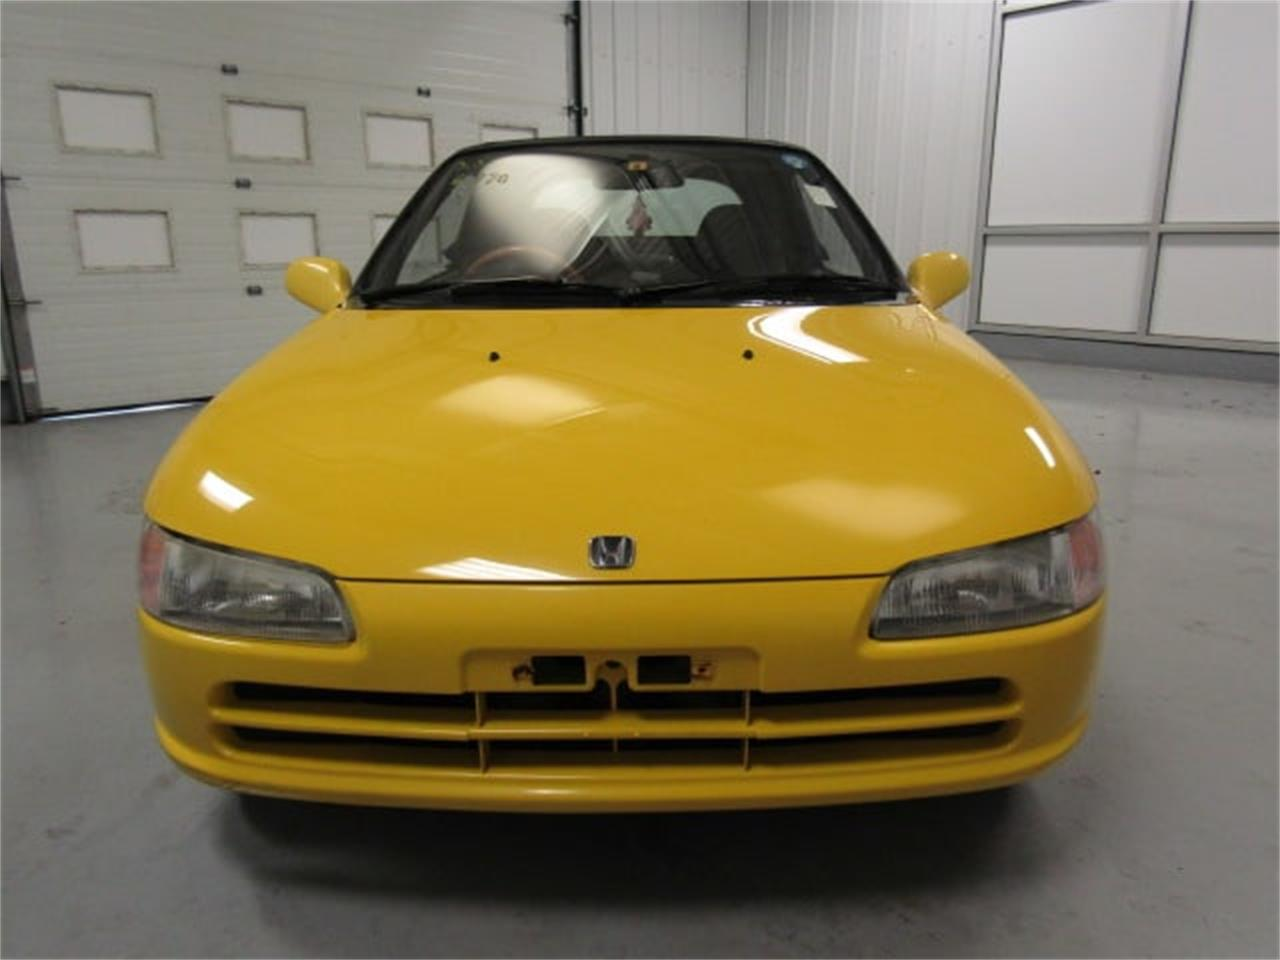 Large Picture of '91 Beat - $4,990.00 Offered by Duncan Imports & Classic Cars - JL81